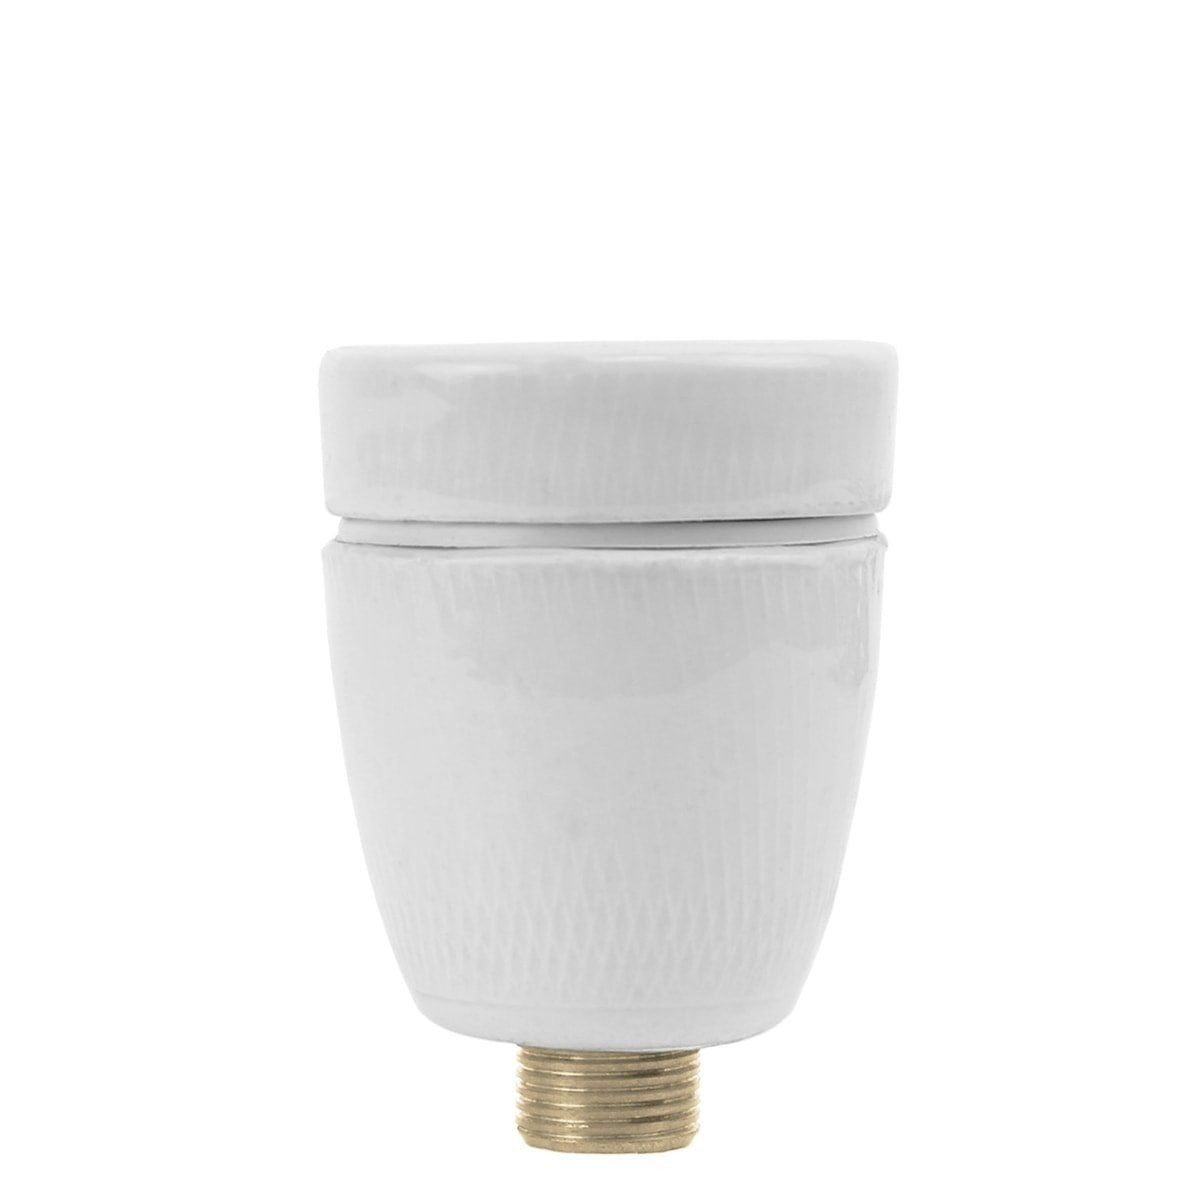 Outdoor lighting Classic Rural Loose porcelain fitting E27 3/8 - Ø 15.8 mm